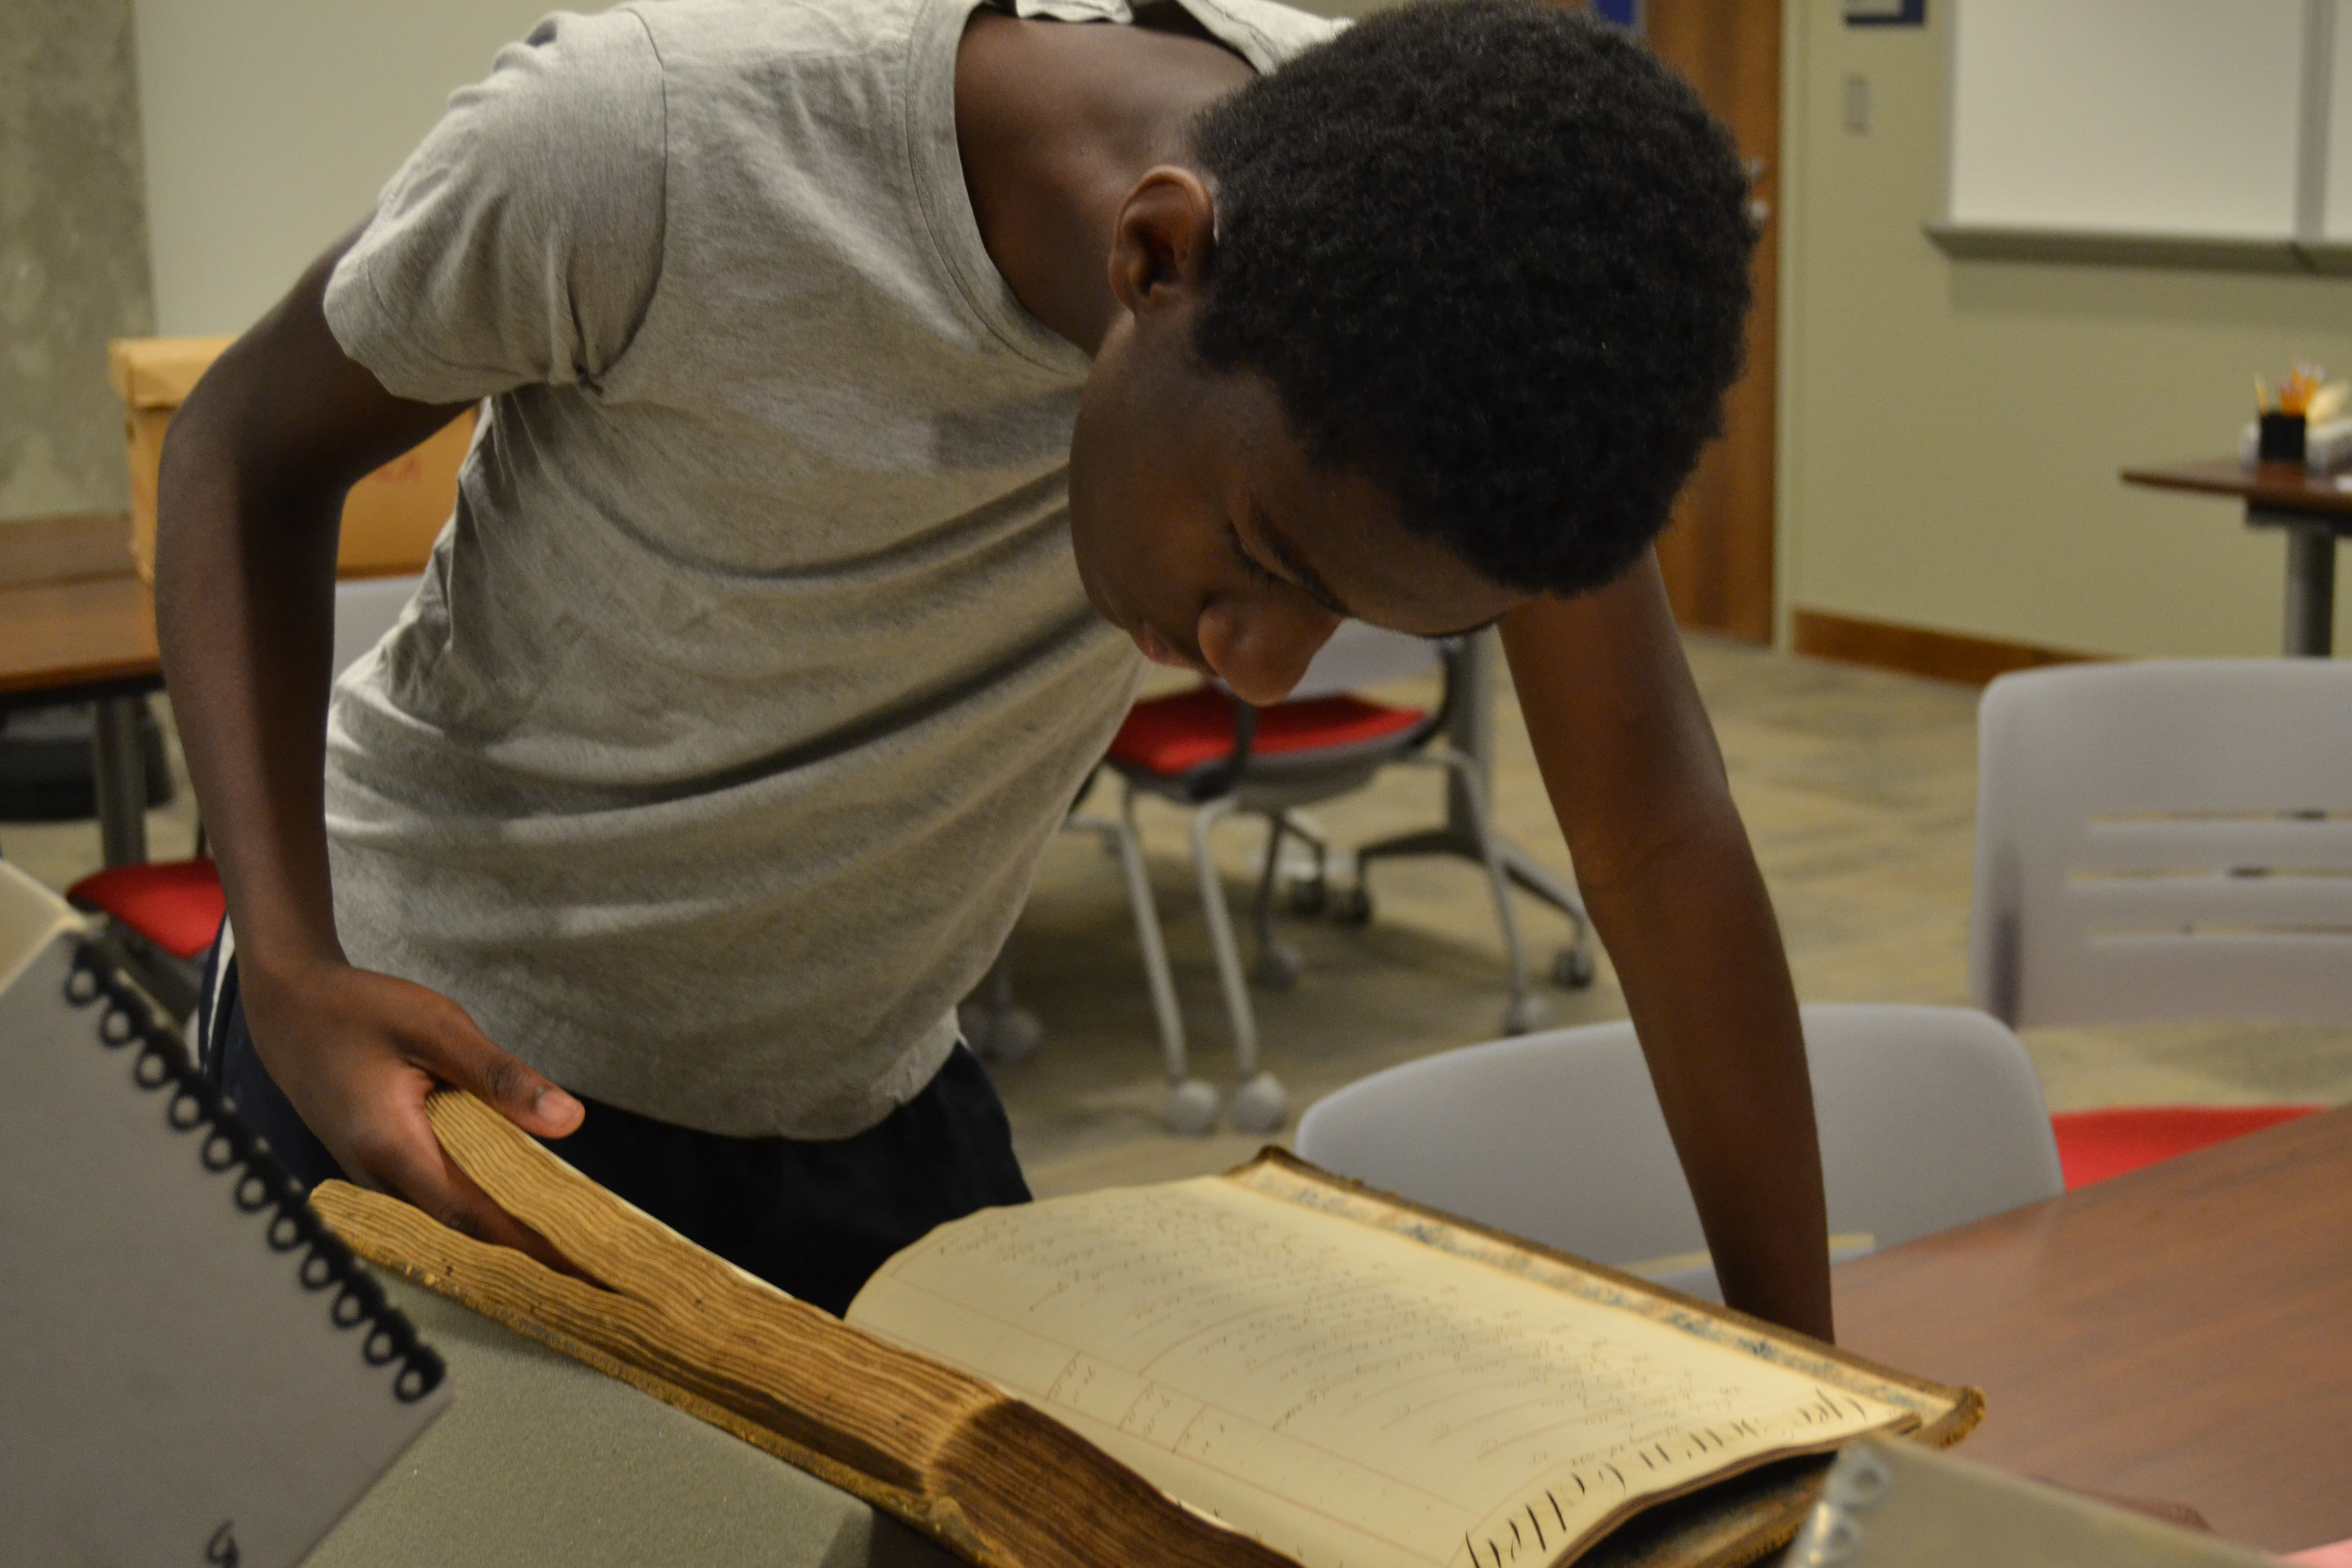 A student looks through a historical ledger in the Georgetown University archives.